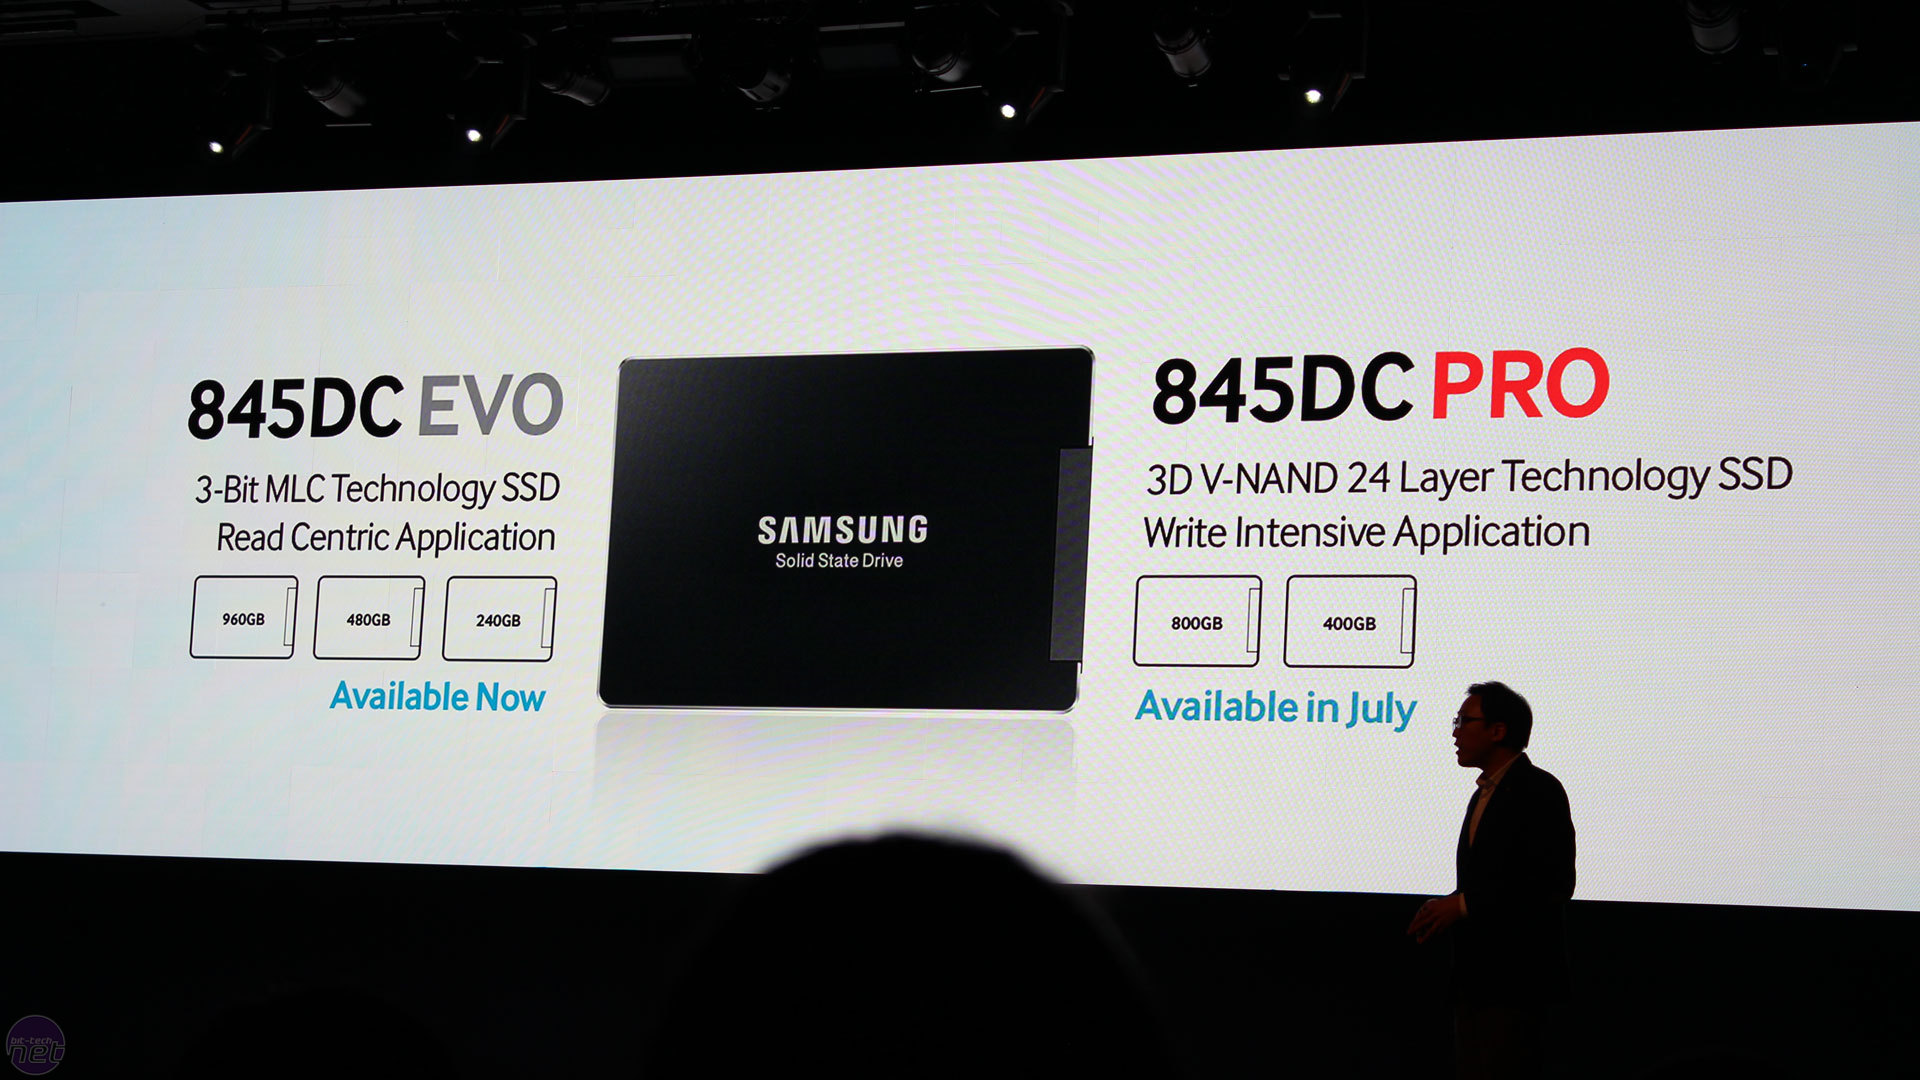 Samsung launches SSD 845DC PRO with 3D V-NAND | bit-tech.net